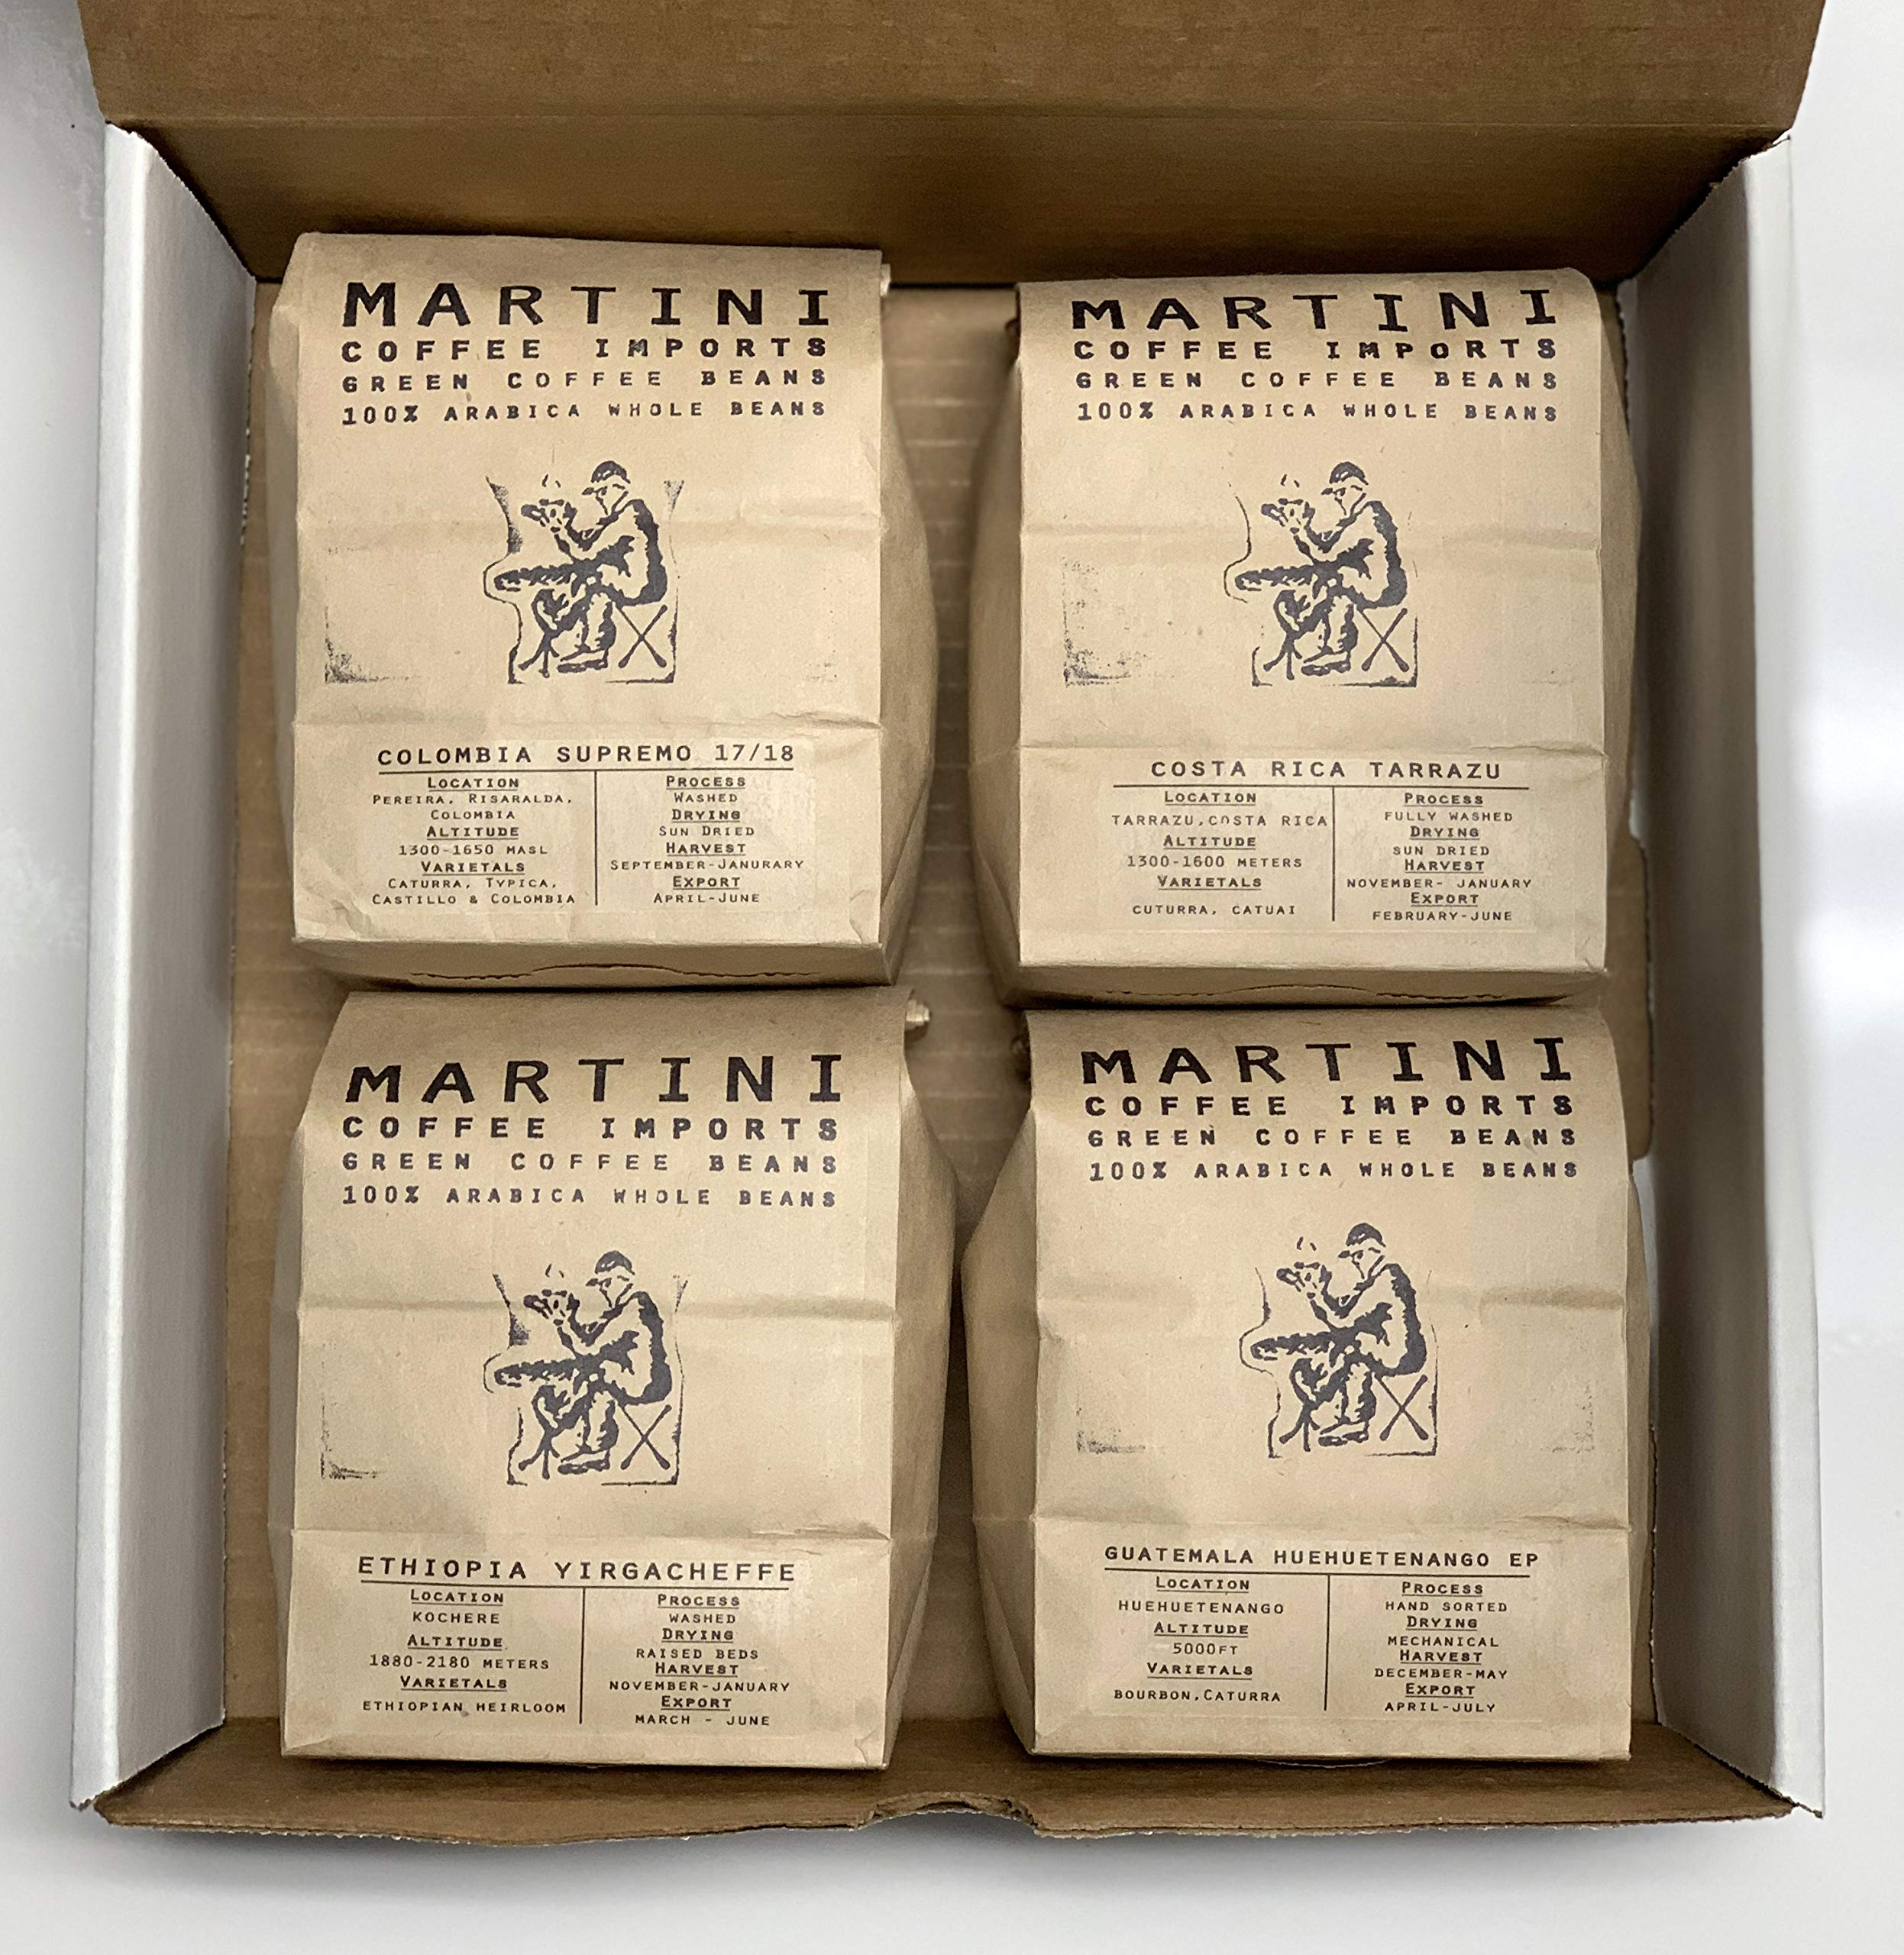 Unroasted Green Coffee Bean Sampler Pack - 4LBS - 100% raw arabica coffee beans - COLOMBIA, ETHIOPIA, GUATEMALA, COSTA RICA, BRAZIL